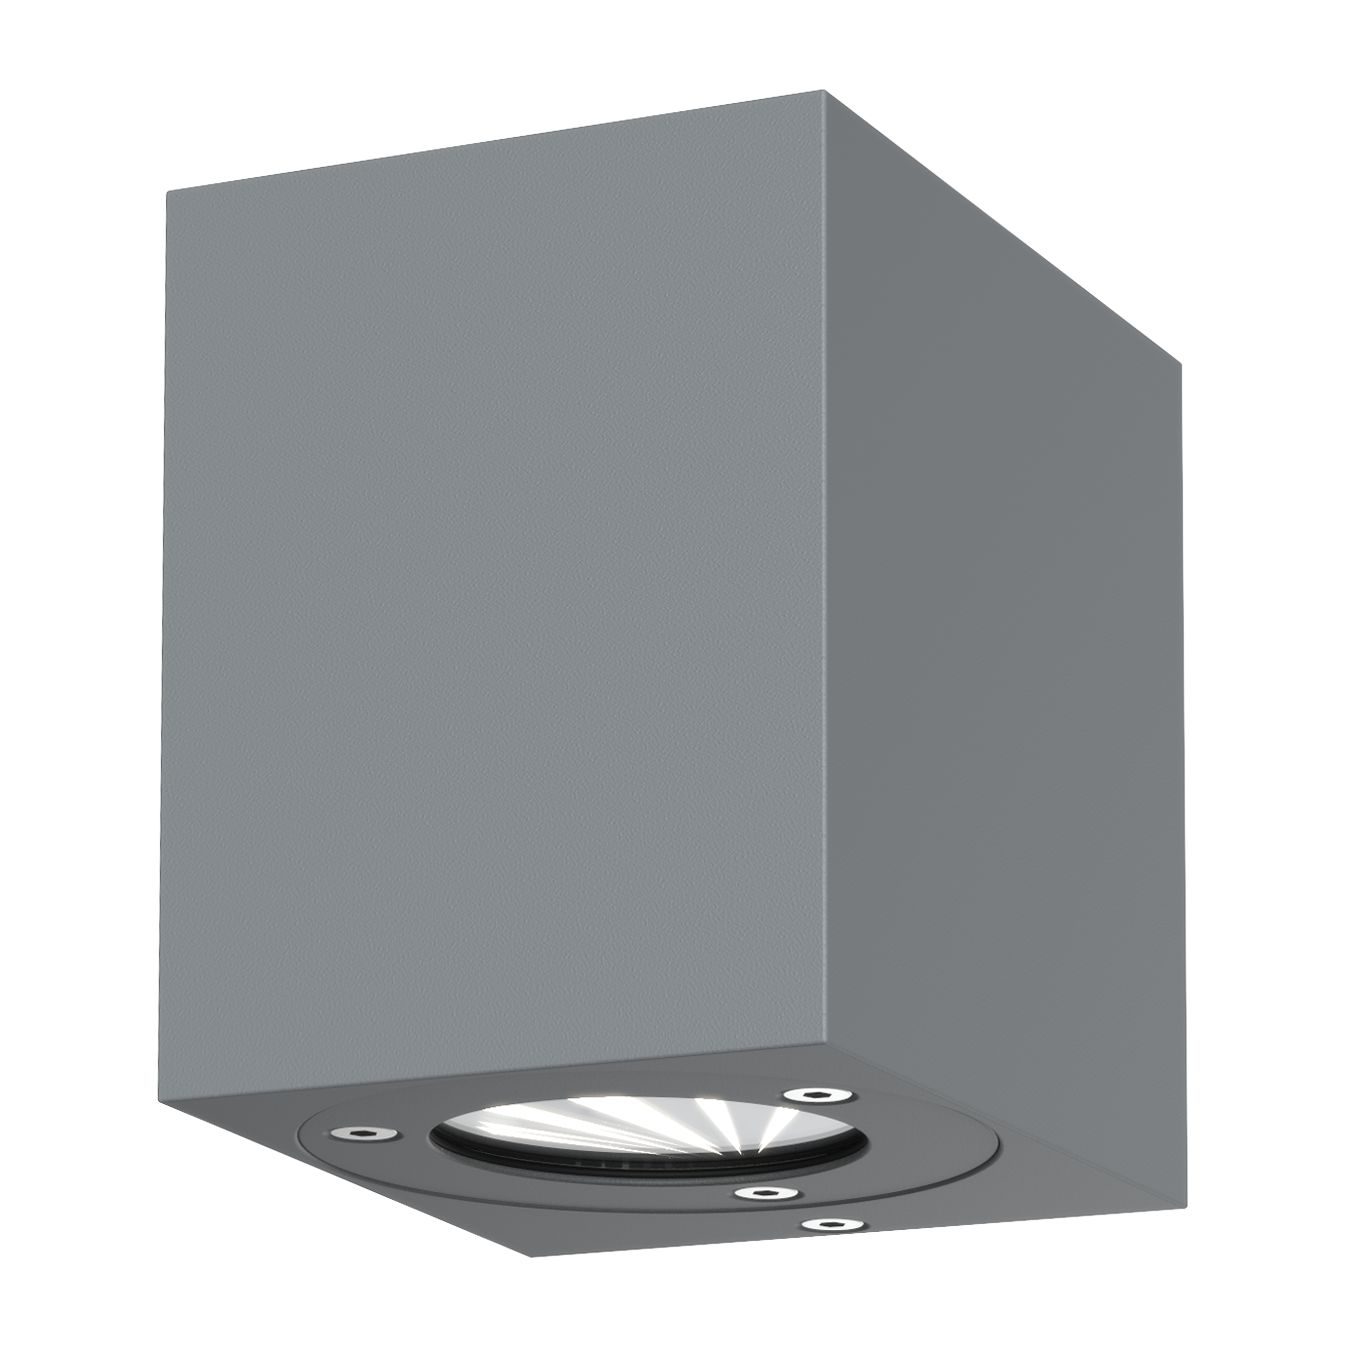 energie  A+, LED-buitenlamp Kanto - glas/staal - 2 lichtbronnen - Grijs, Nordlux